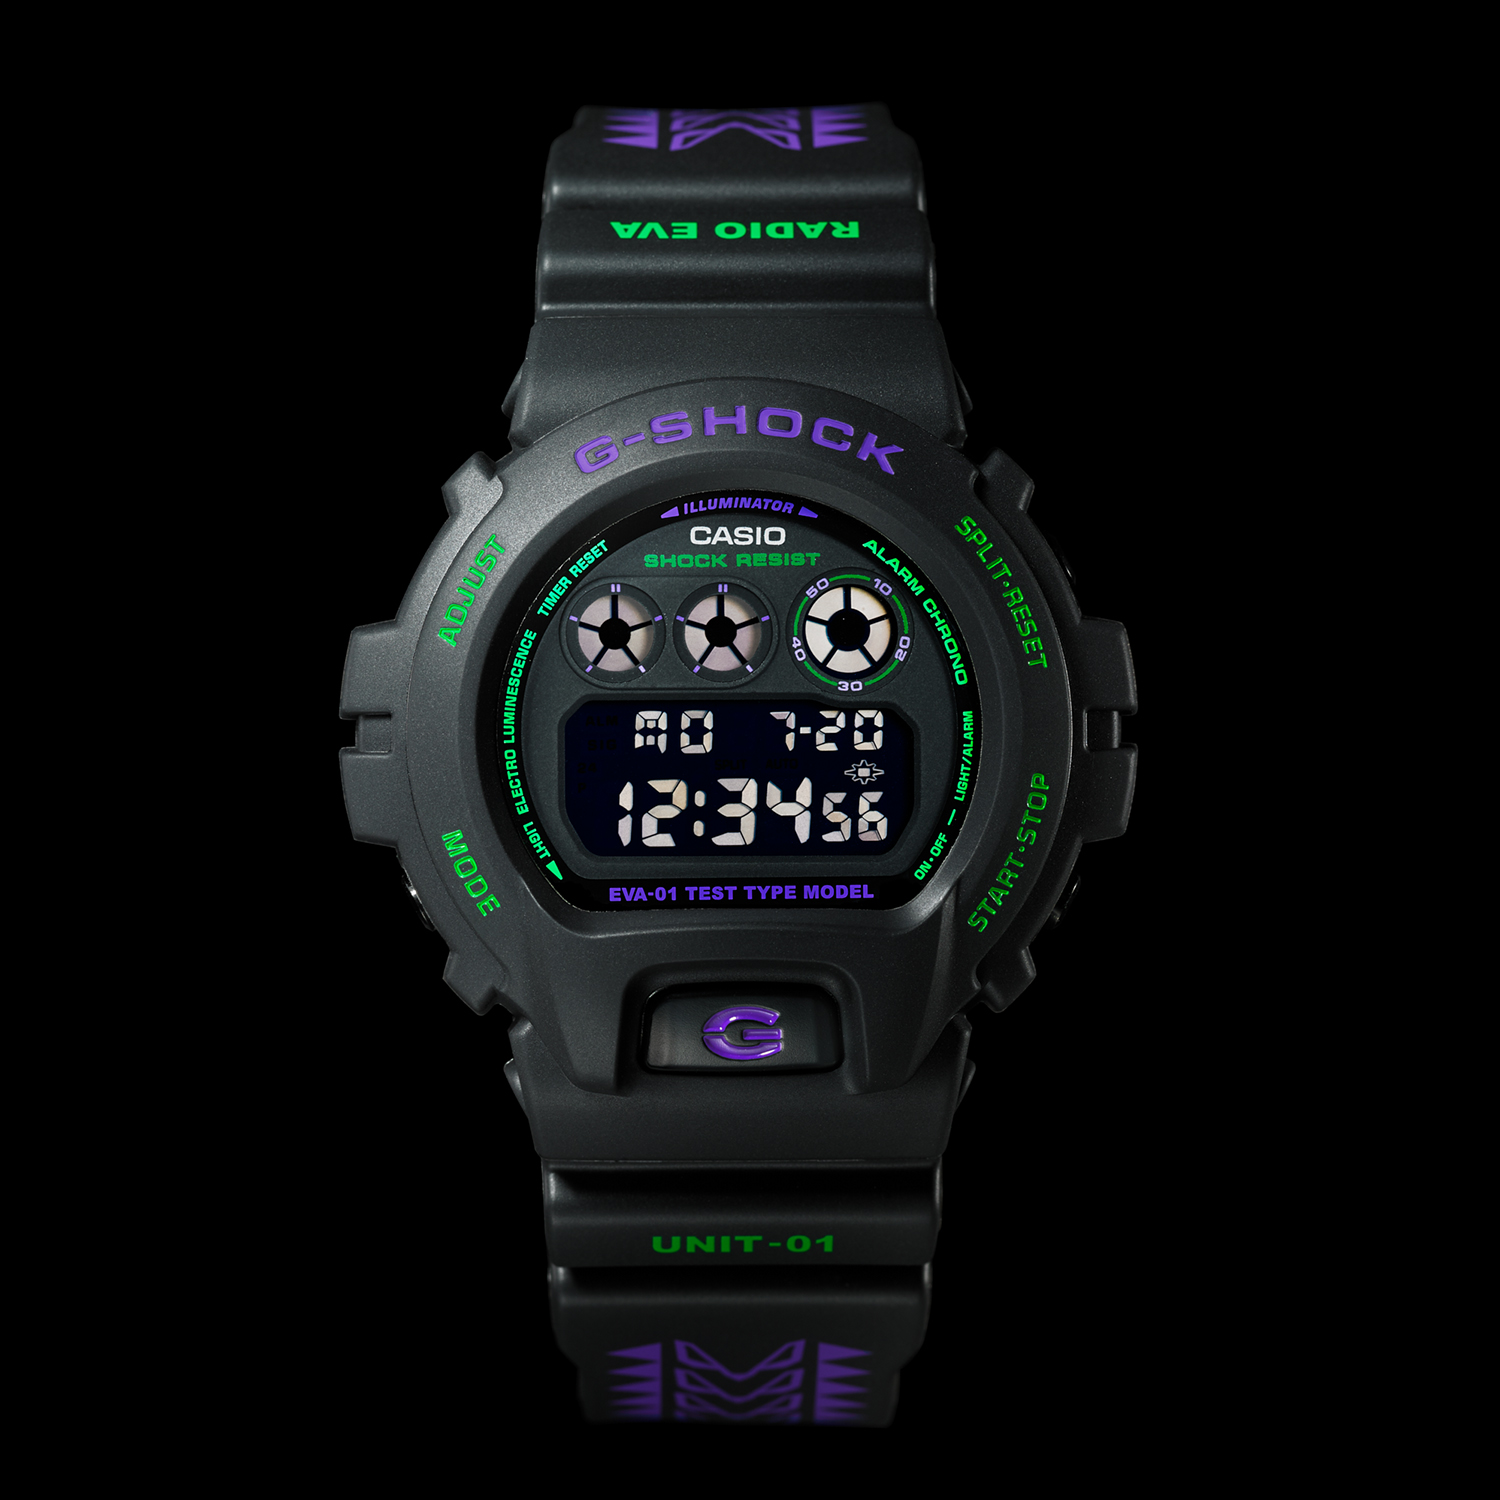 EVANGELION STORE オリジナル腕時計 G-SHOCK DW-6900 feat.RADIO EVA